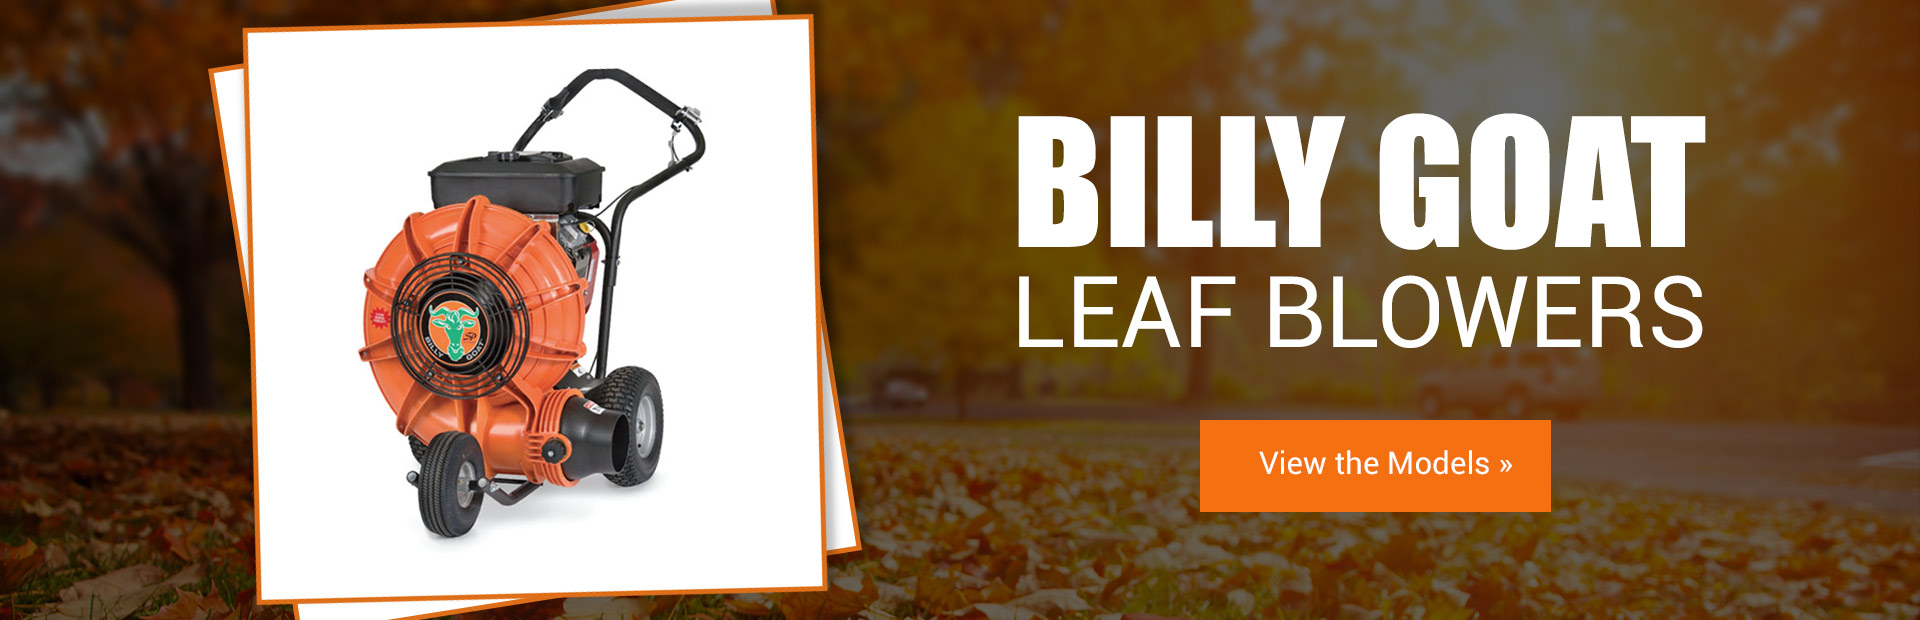 Billy Goat Leaf Blowers: Click here to view the models.